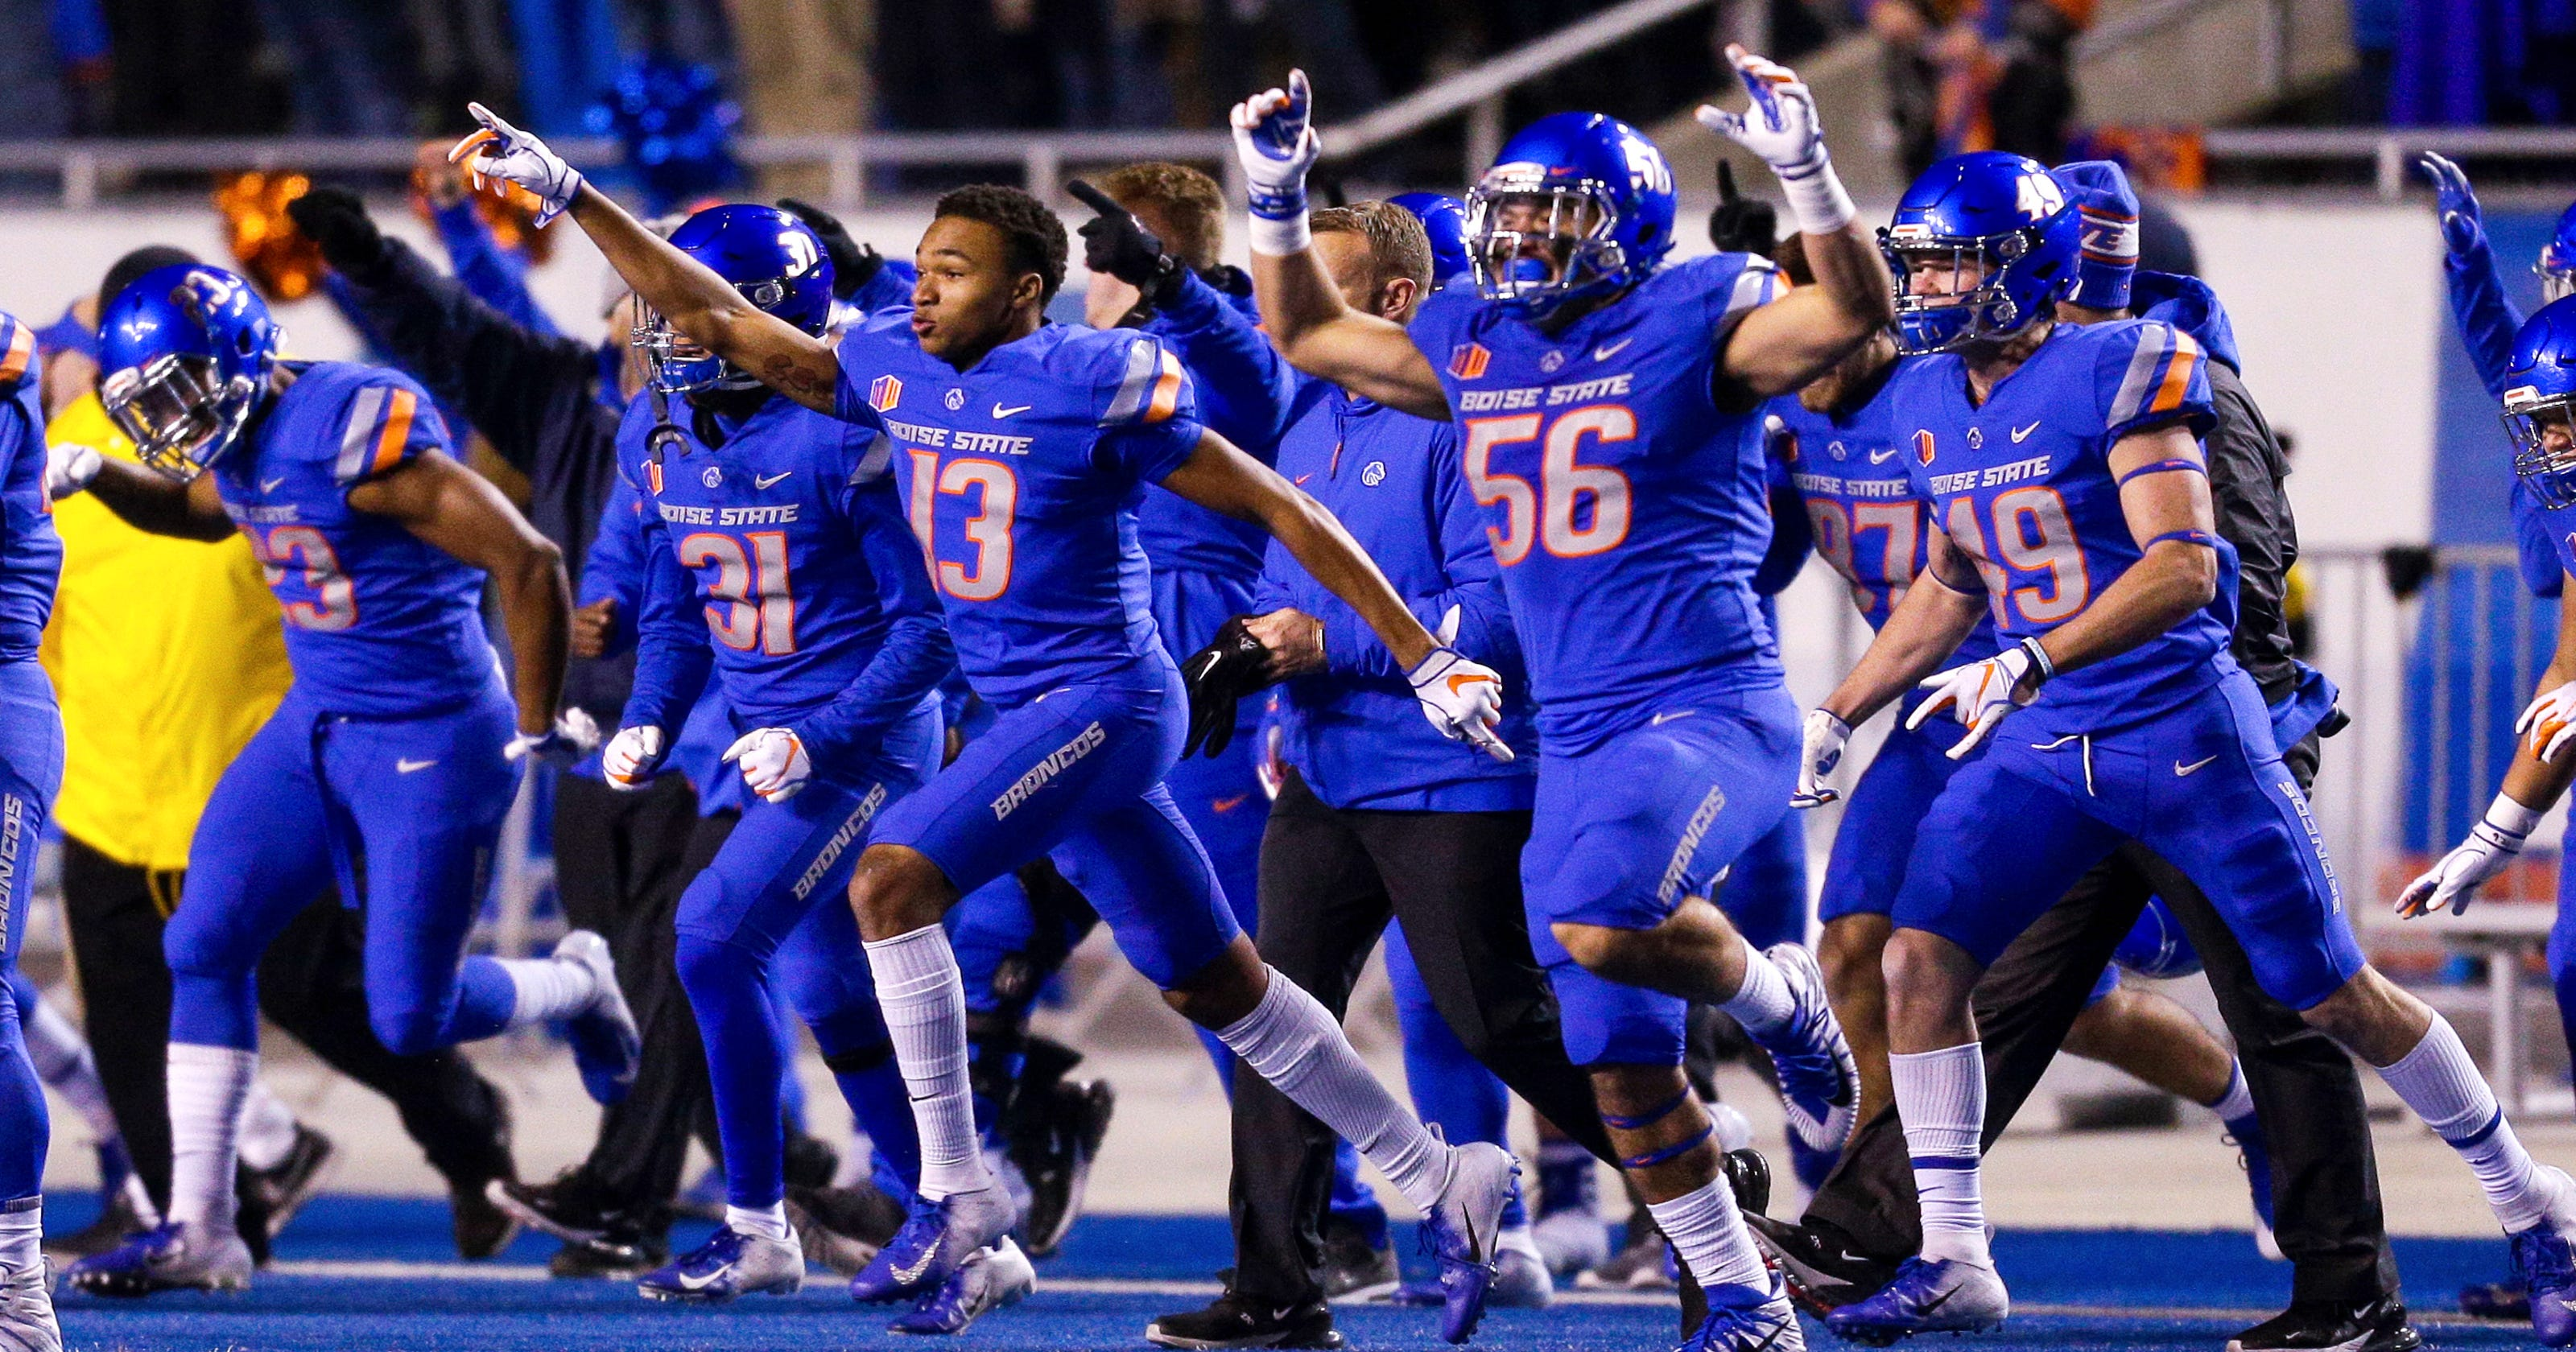 How to watch Boise State-Fresno State football: What is the